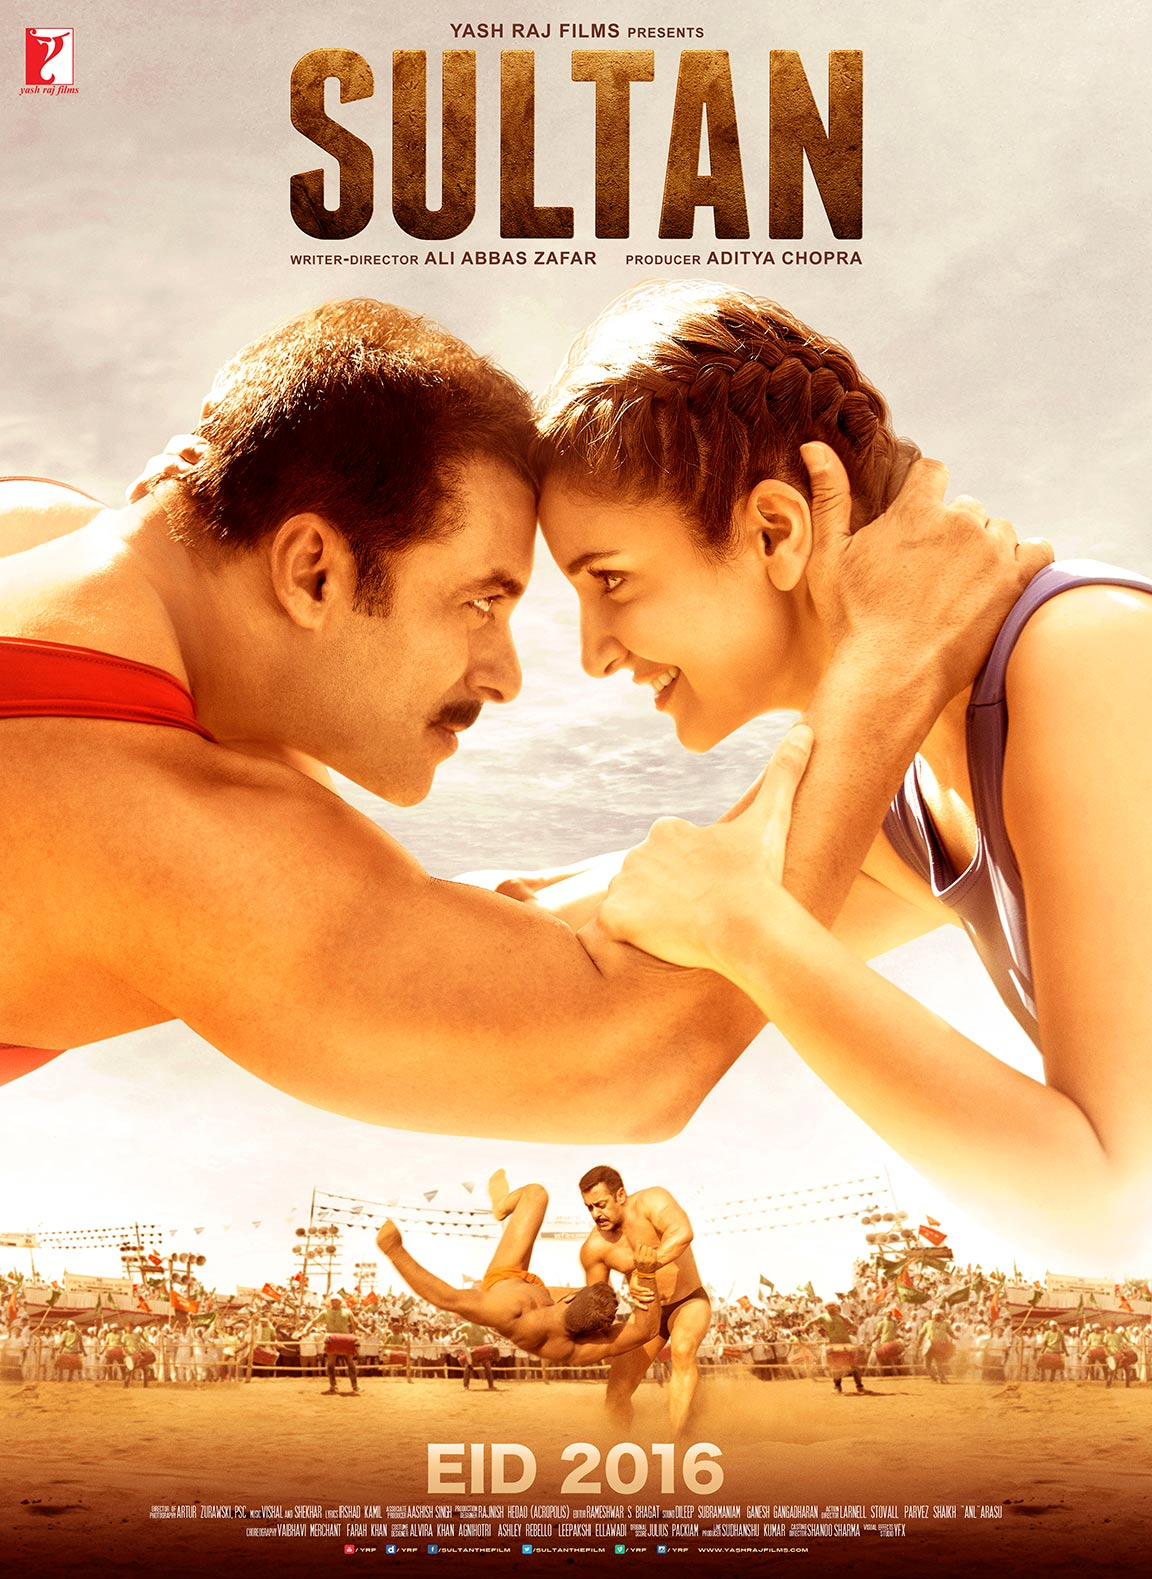 Salman Khan, Anushka Sharma film Sultan is ninth highest grossing Bollywood film in overseas markets MT wiki, worldwide box office collection a lifetime distributor share of INR 302 Crore crore, it budget 70 Crores